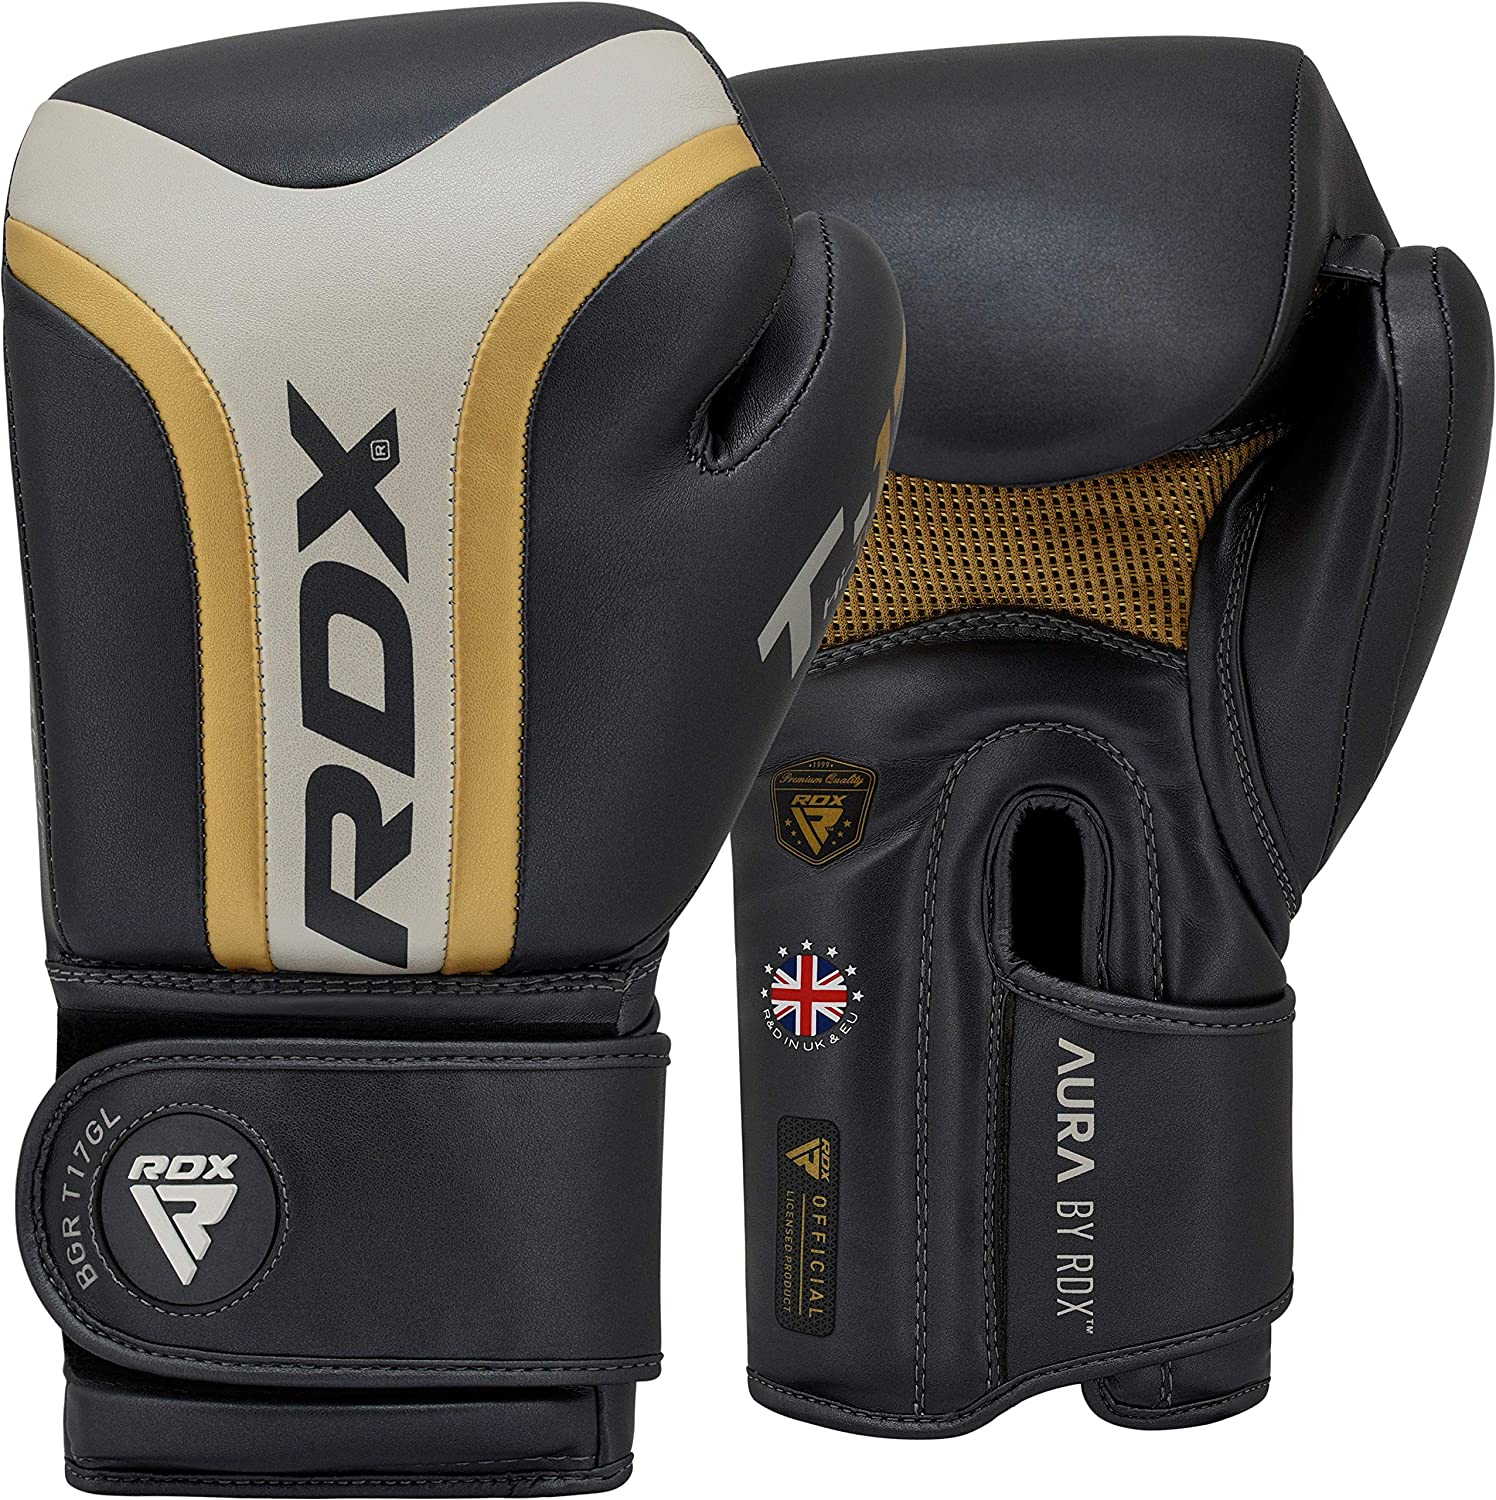 RDX Max 62% OFF Boxing Gloves for security Training Muay Thai Glov Hide Maya Leather